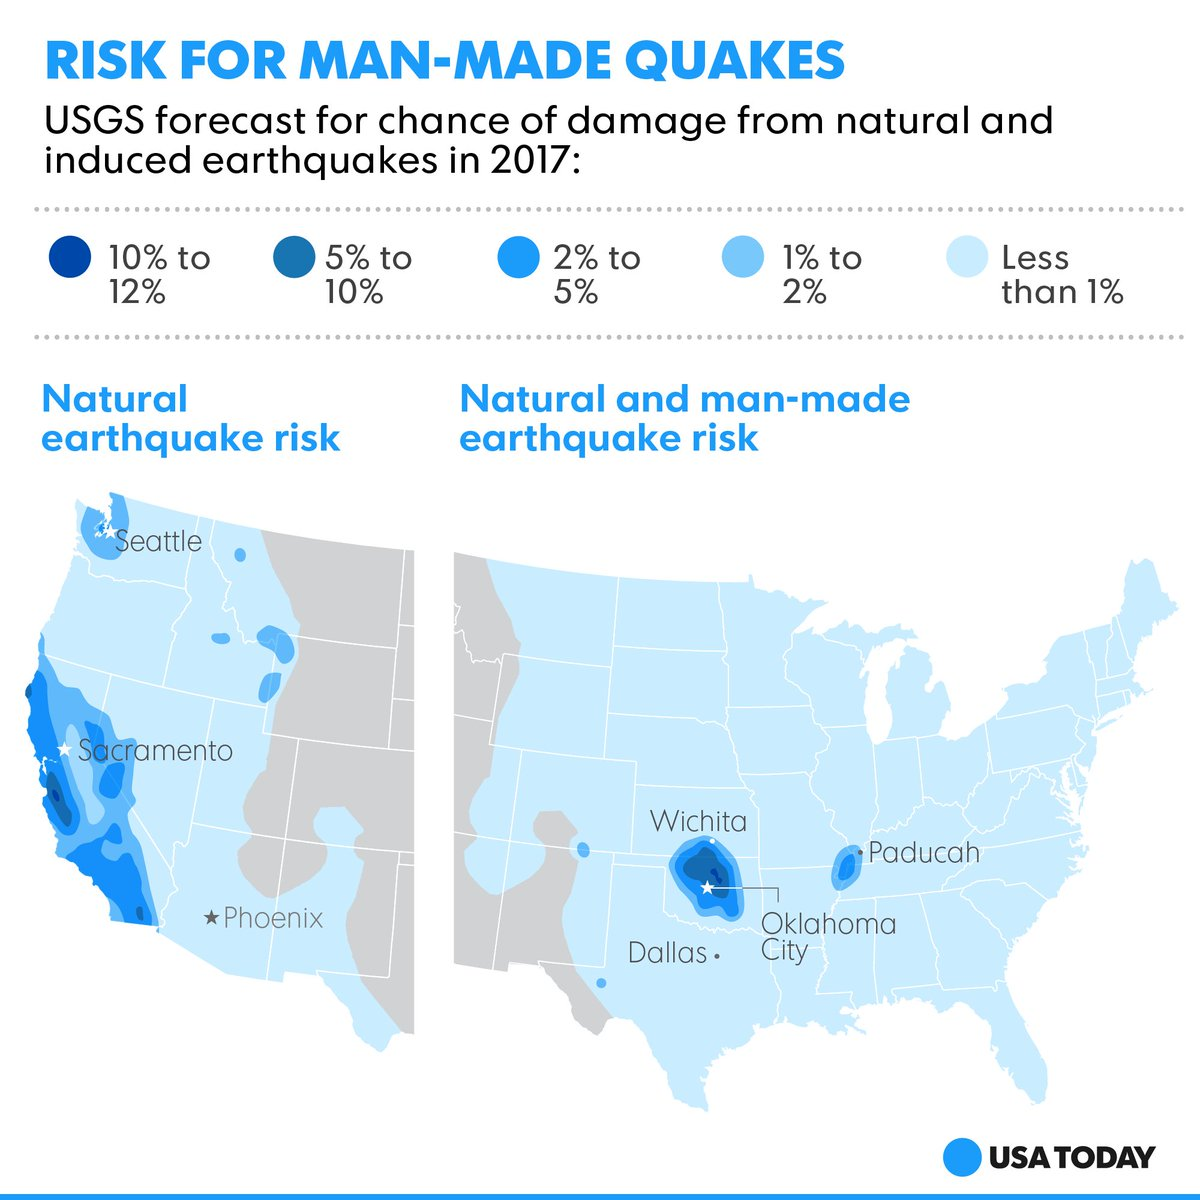 Man-made earthquakes in the USA